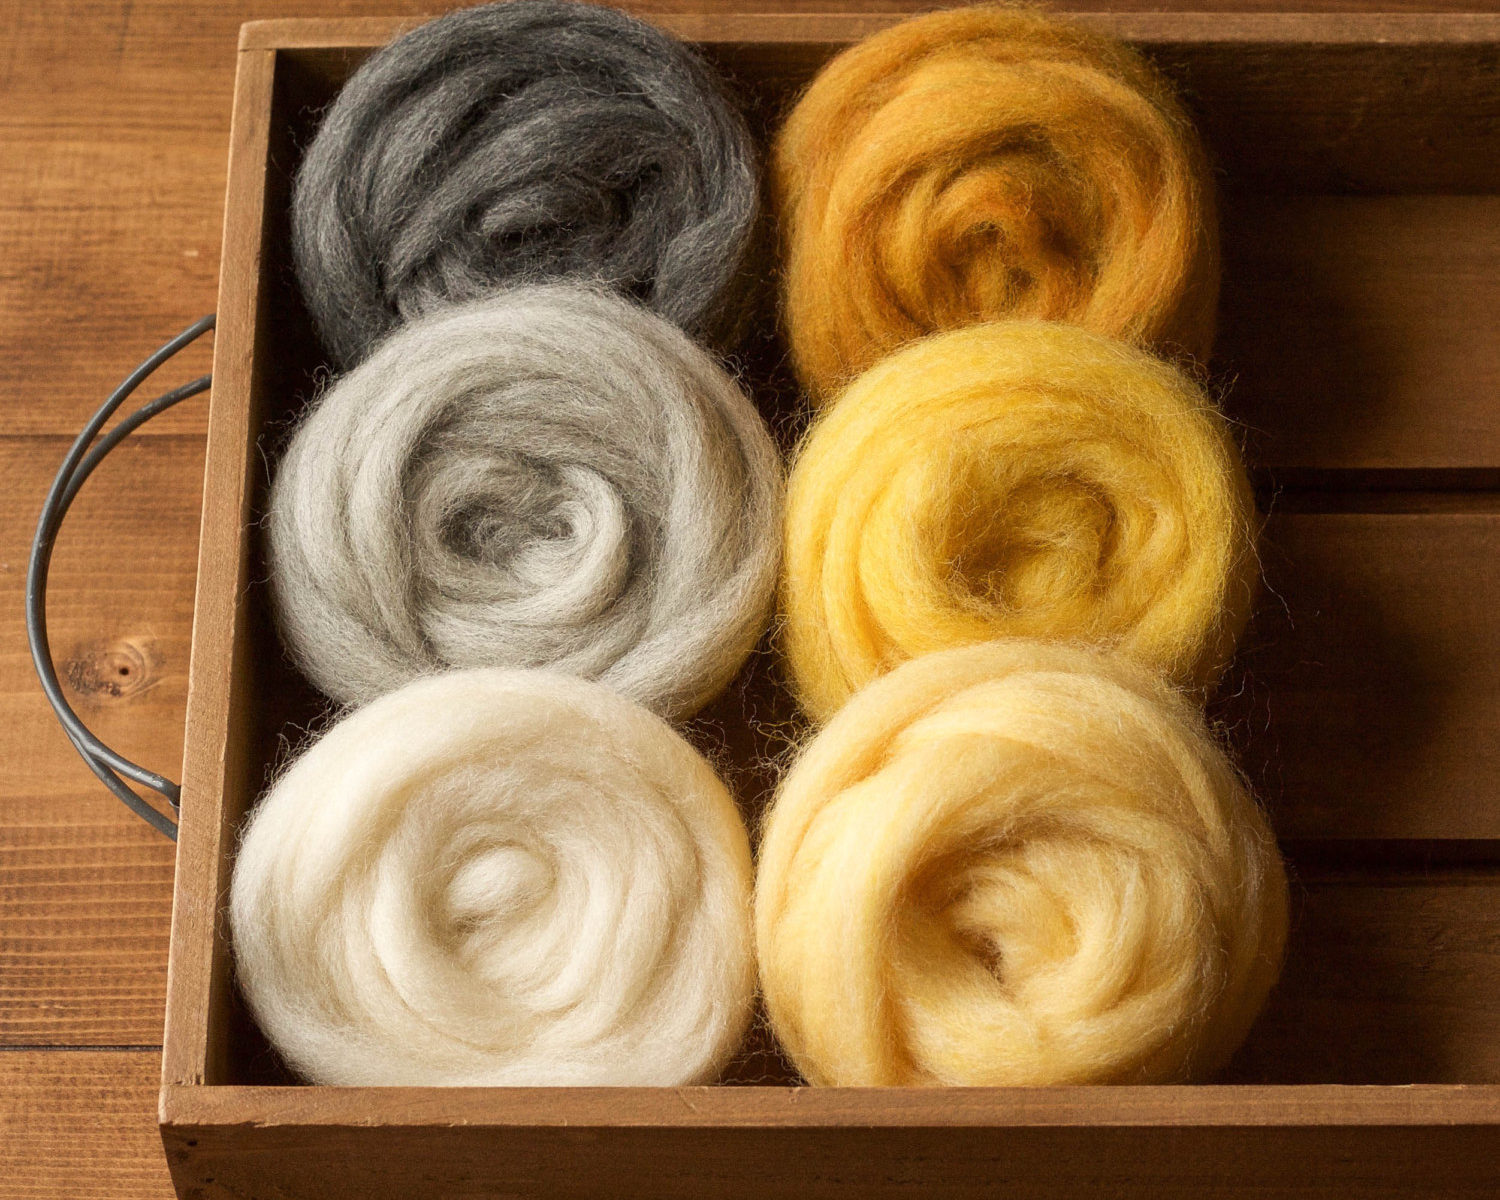 Wool Roving for Needle Felting, Assortment, Fiber Sampler, Gold and Grey, Yellow, Gray, Wool Rove, Felting Wool, Craft Supplies, DIY